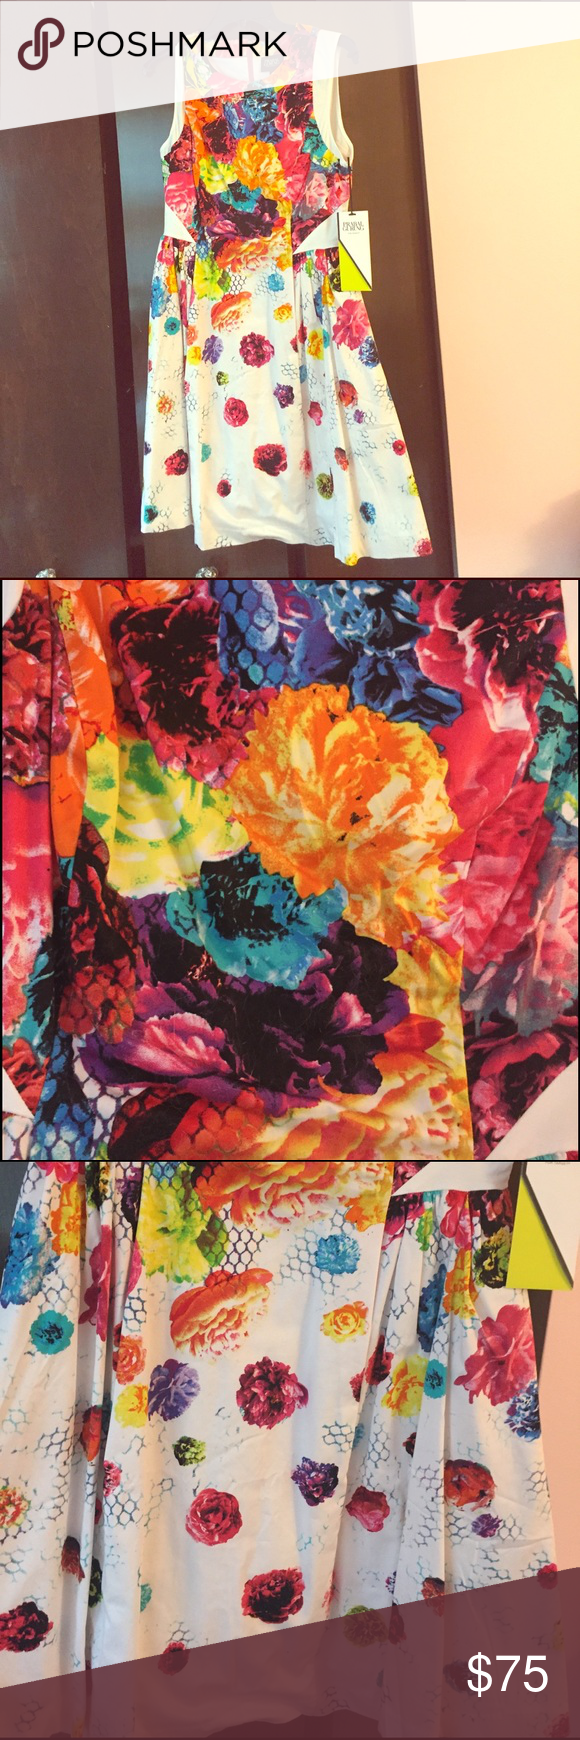 Prabal gurung for target beautiful floral dress This a line dress is gorgeous! I've recently had a baby so I don't think a size 4 will ever cut it again. Otherwise I'd never let it go it was so hard to find!!! Absolutely stunning colors Prabal Gurung for Target Dresses